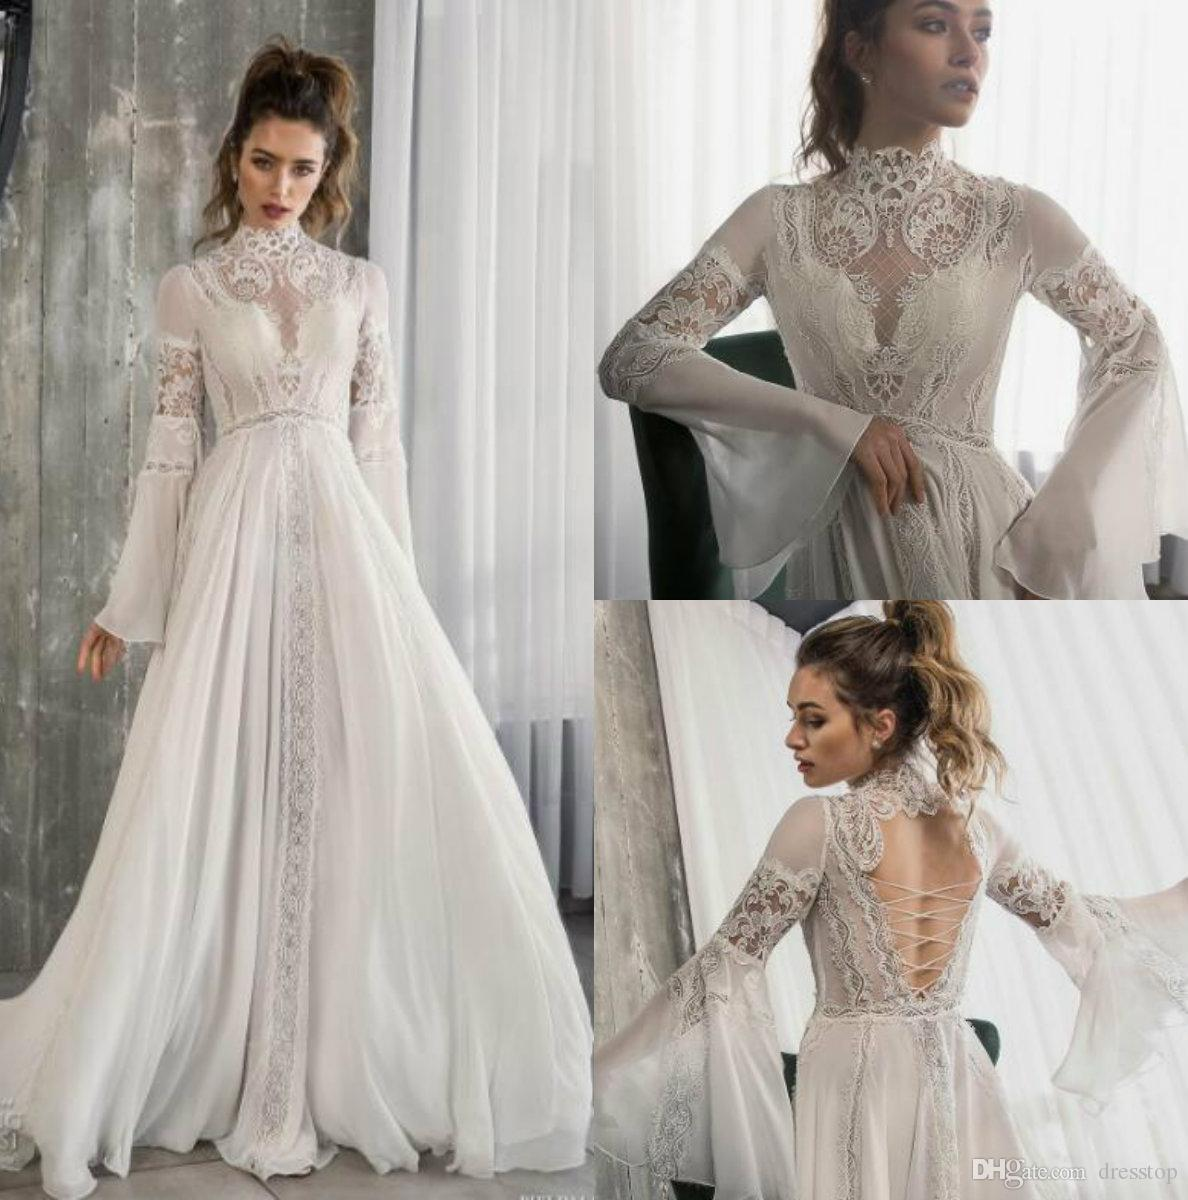 632e242cfb8eb Riki Dalal 2018 Bohemian Lace Wedding Dress High Neck Long Sleeve Bridal  Gowns Chiffon vestido de novia Lace-up Backless Wedding Gowns